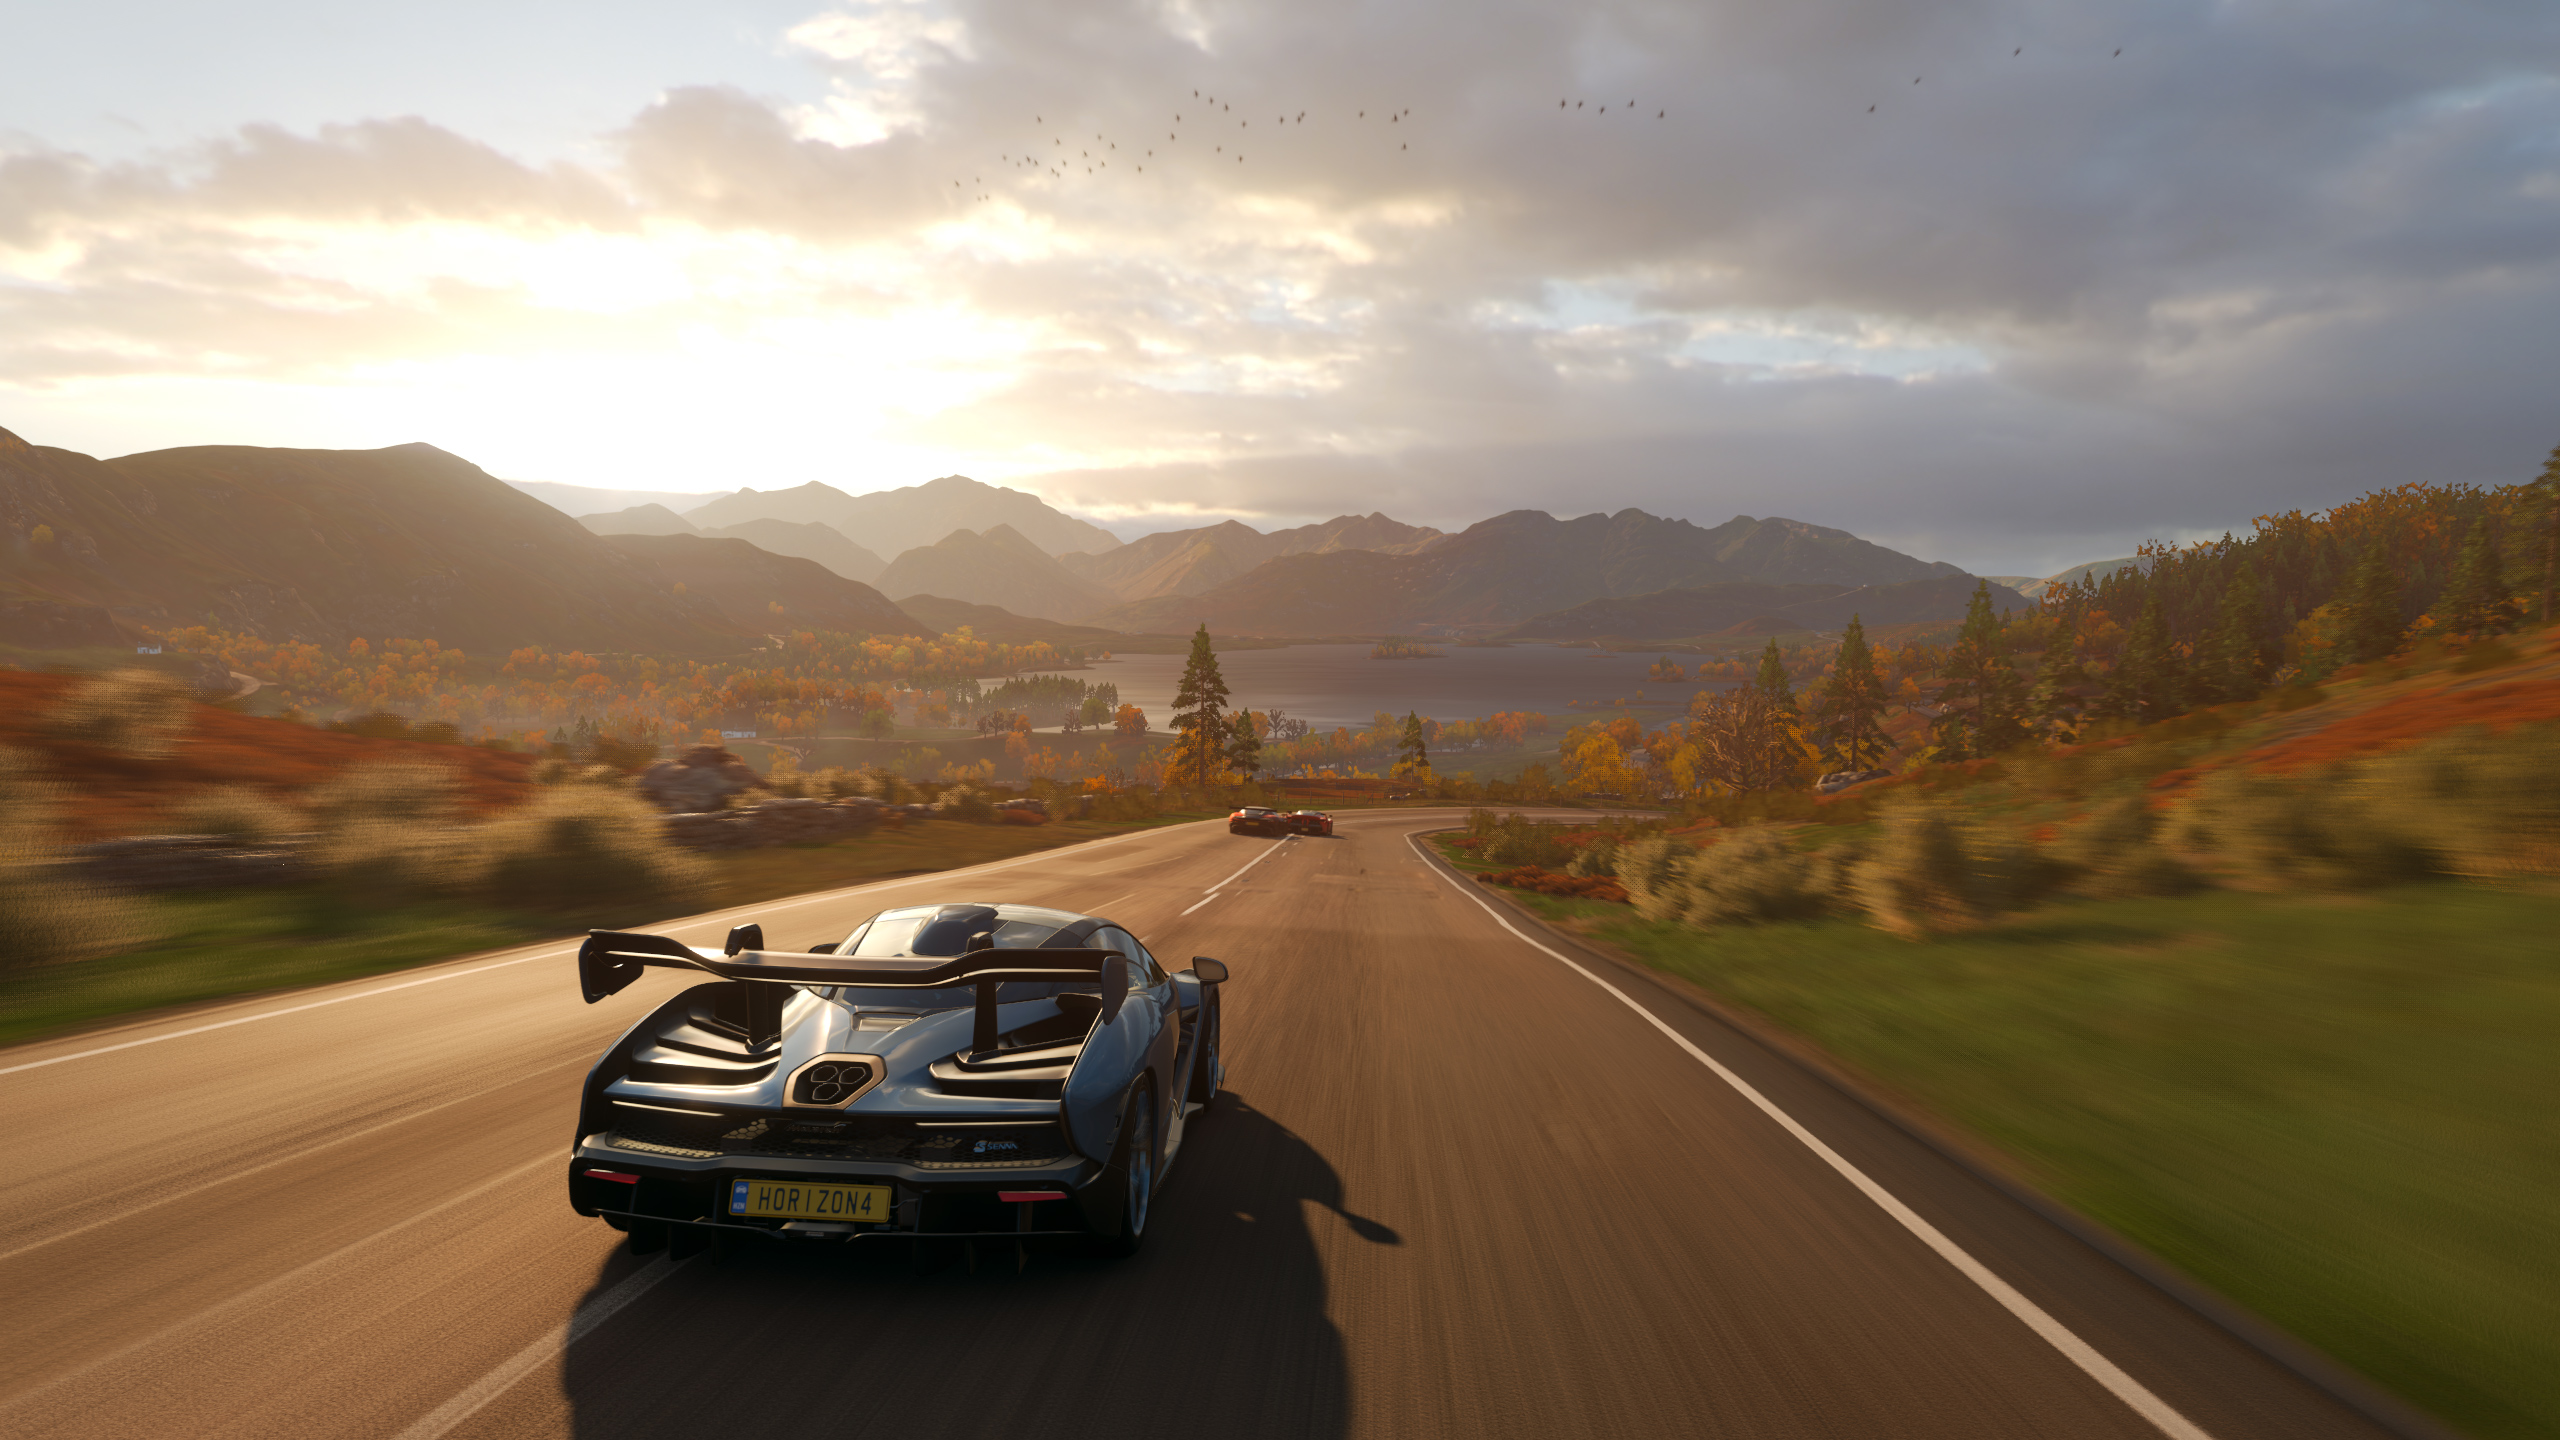 Forza horizon 4 2019 hd games 4k wallpapers images backgrounds photos and pictures - Forza logo wallpaper ...